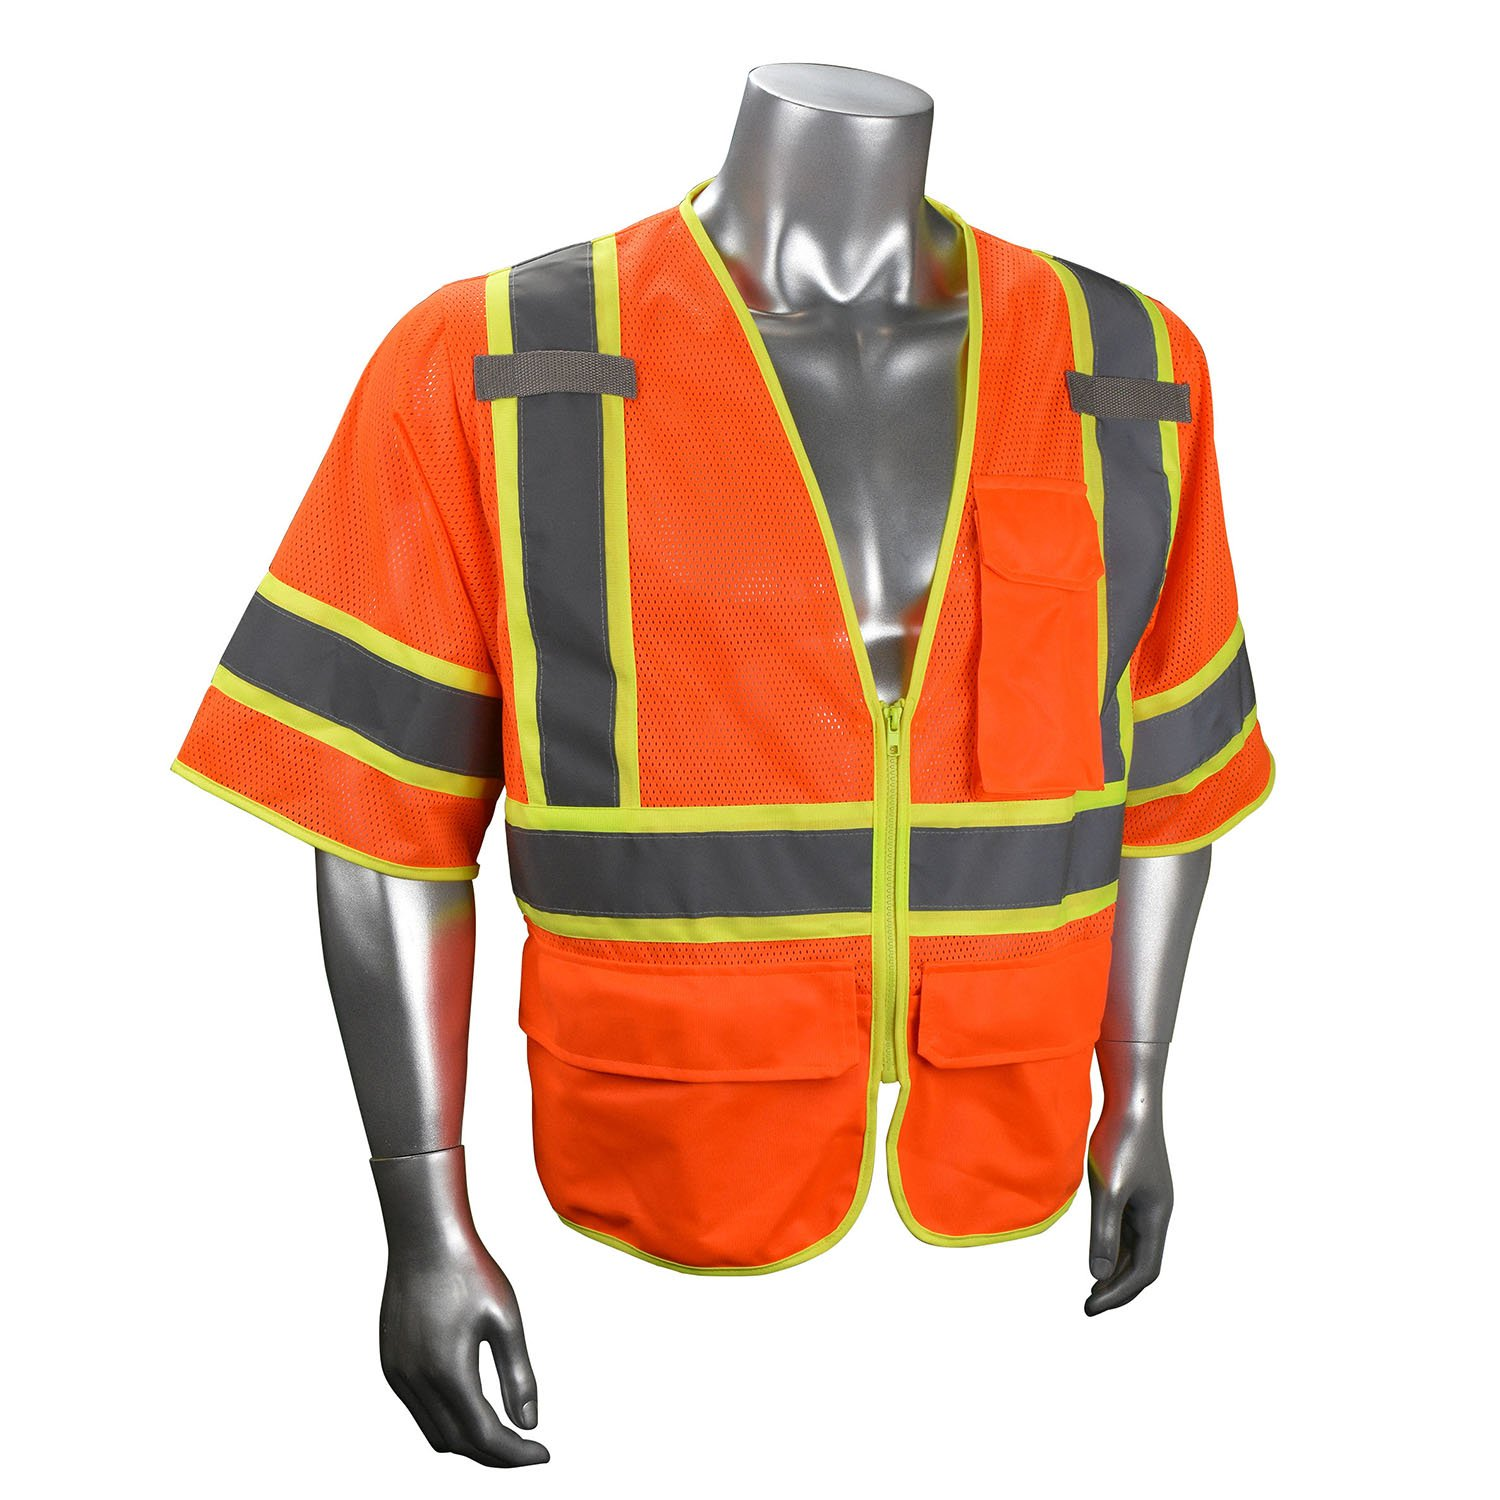 94baad9db79 Radians SV272-3 Class 3 Multi-purpose Surveyor Vest Orange Front